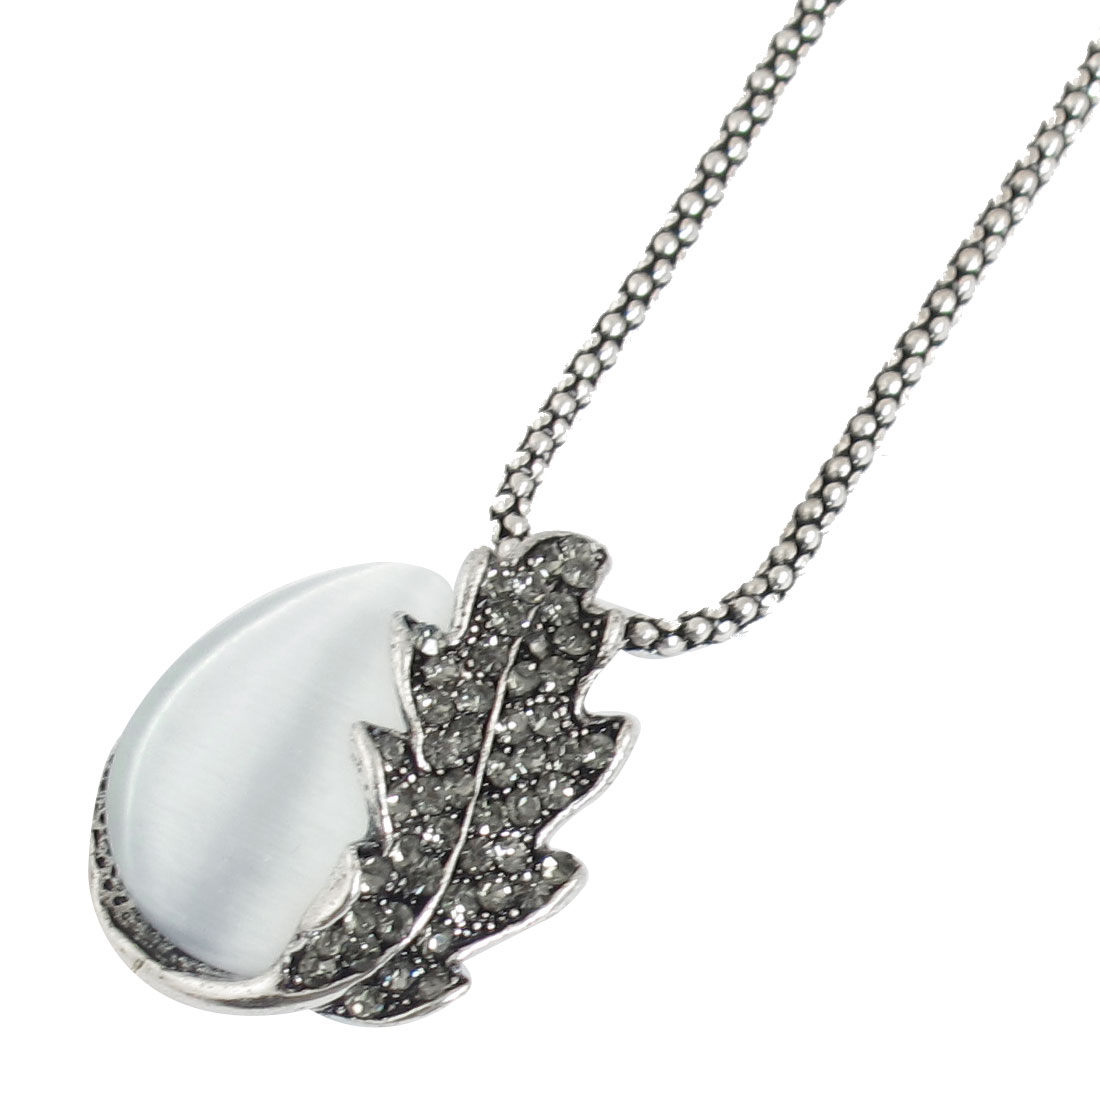 Waterdrop Shaped Faux Cat Eye Stone Pendant Necklace Silver Tone for Women